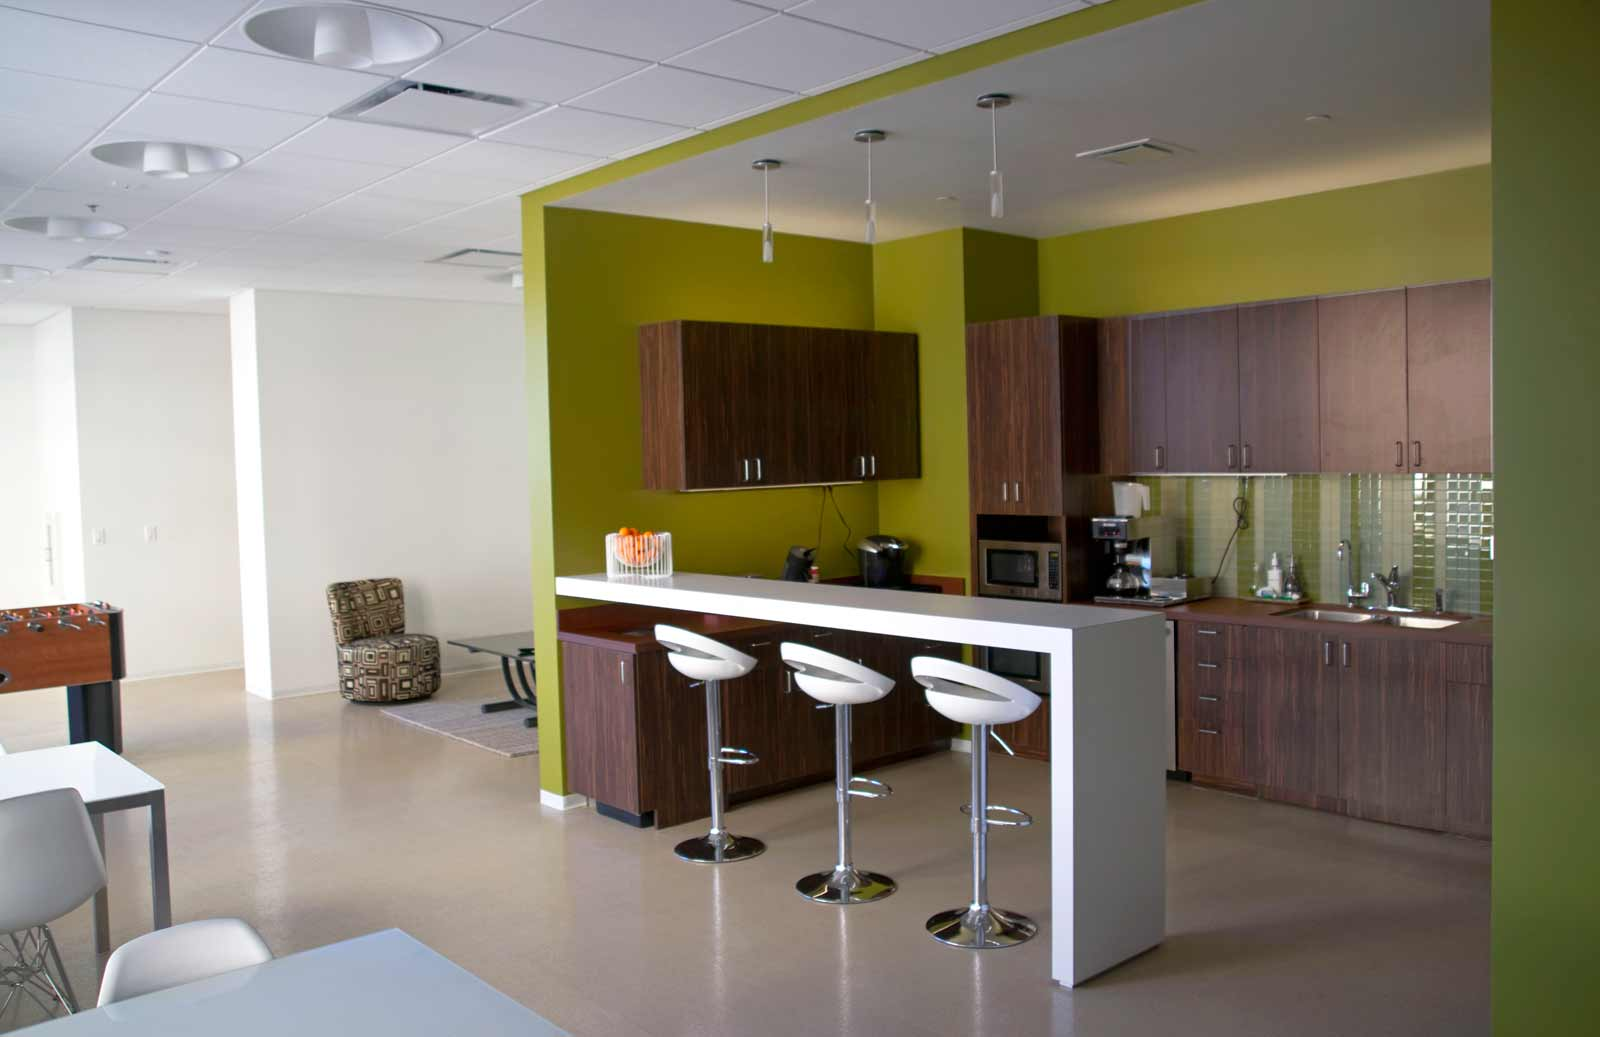 Cool office breakroom ideas joy studio design gallery for Office kitchen design